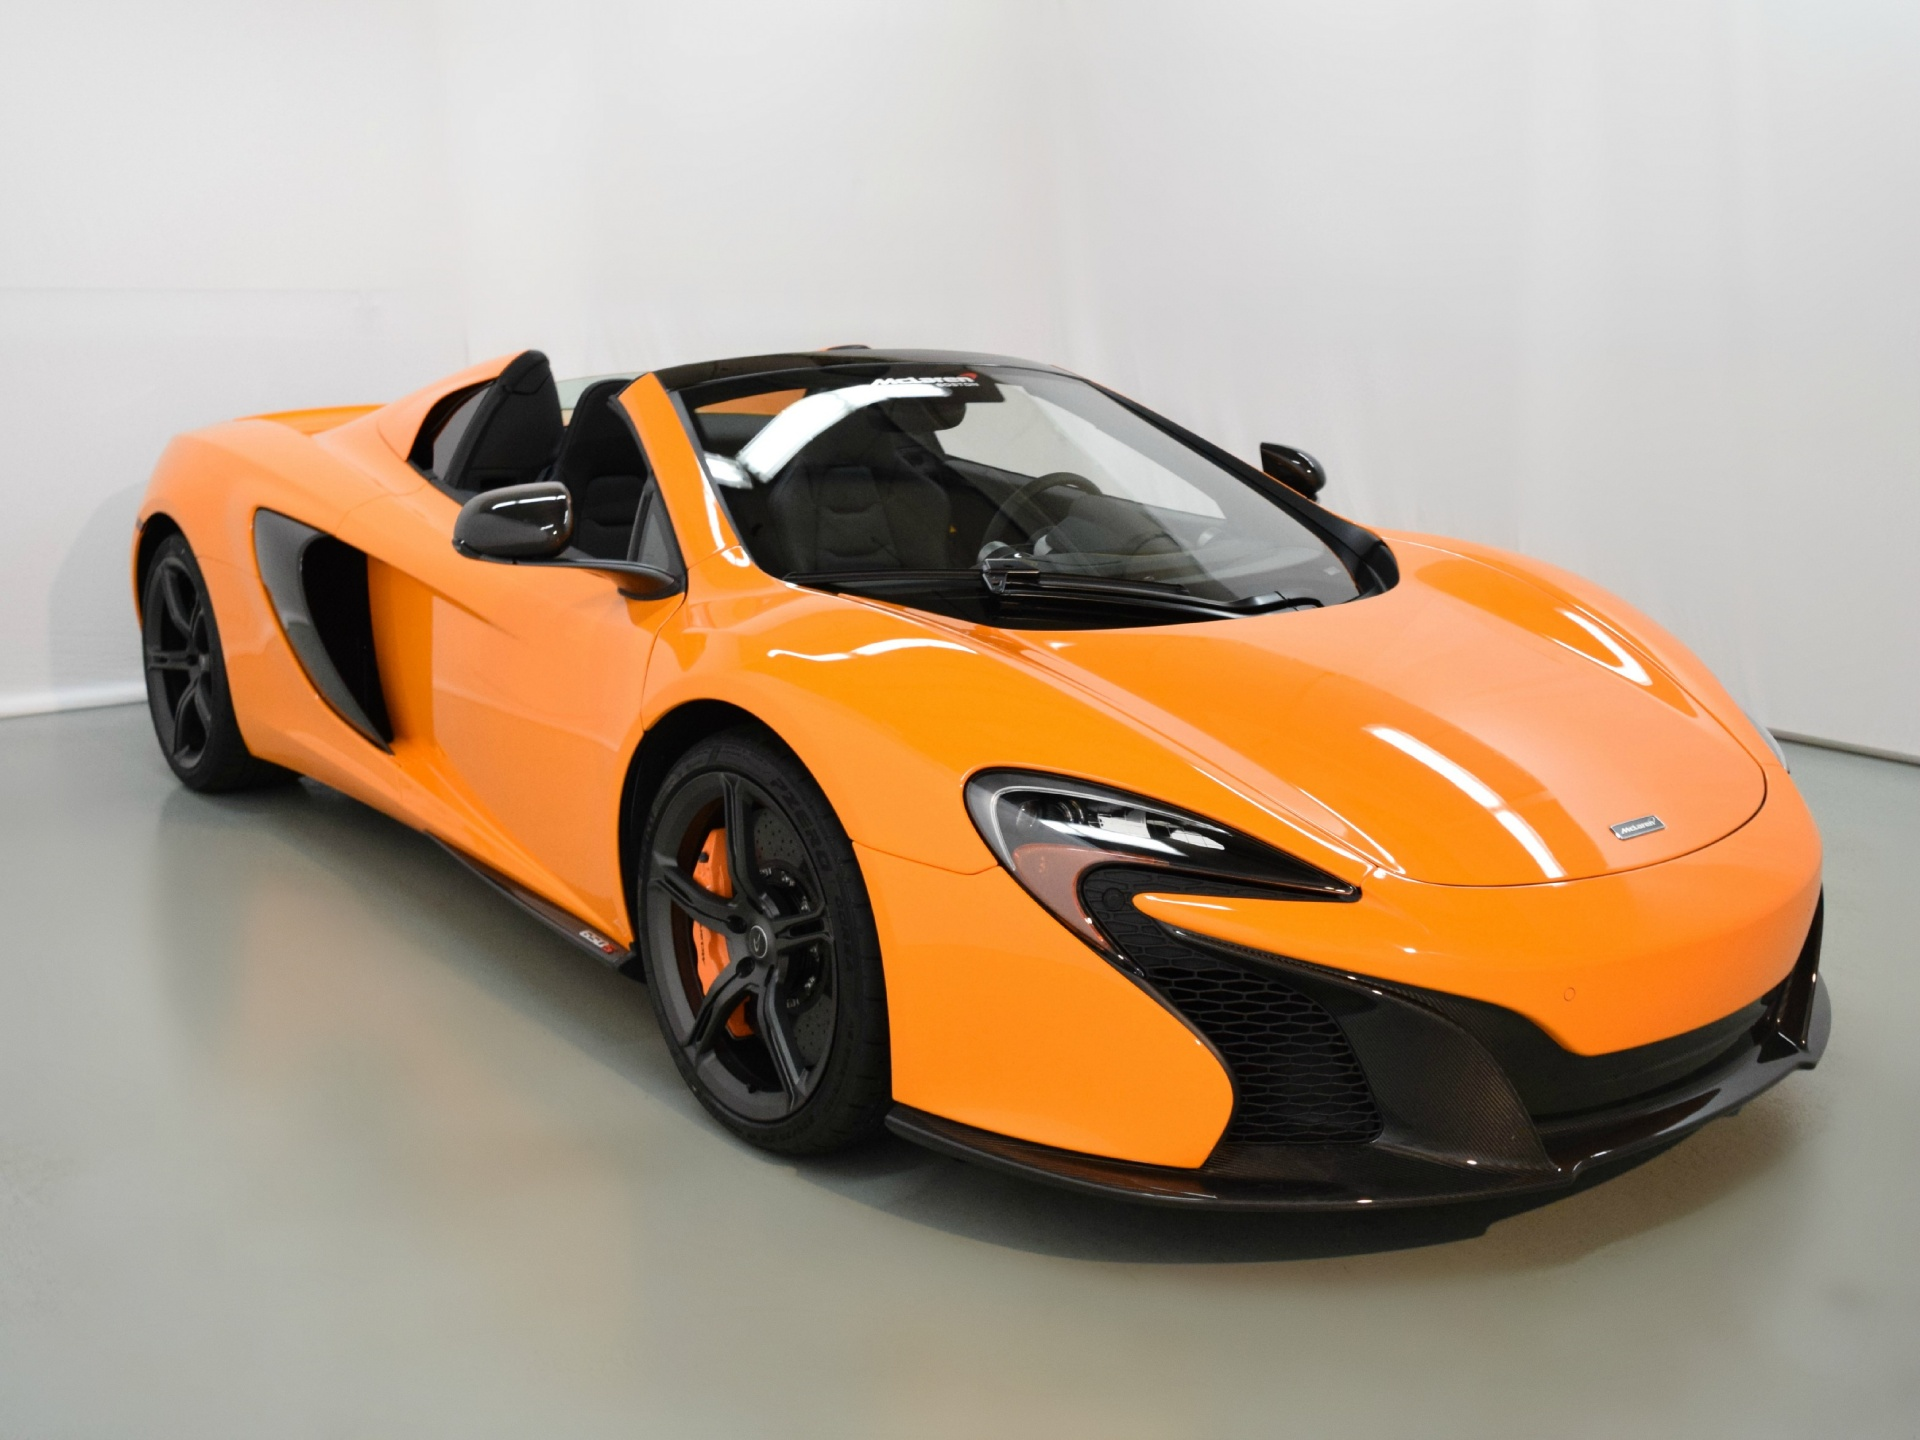 2016 mclaren 650s spider for sale in norwell ma 005881 mclaren boston. Black Bedroom Furniture Sets. Home Design Ideas